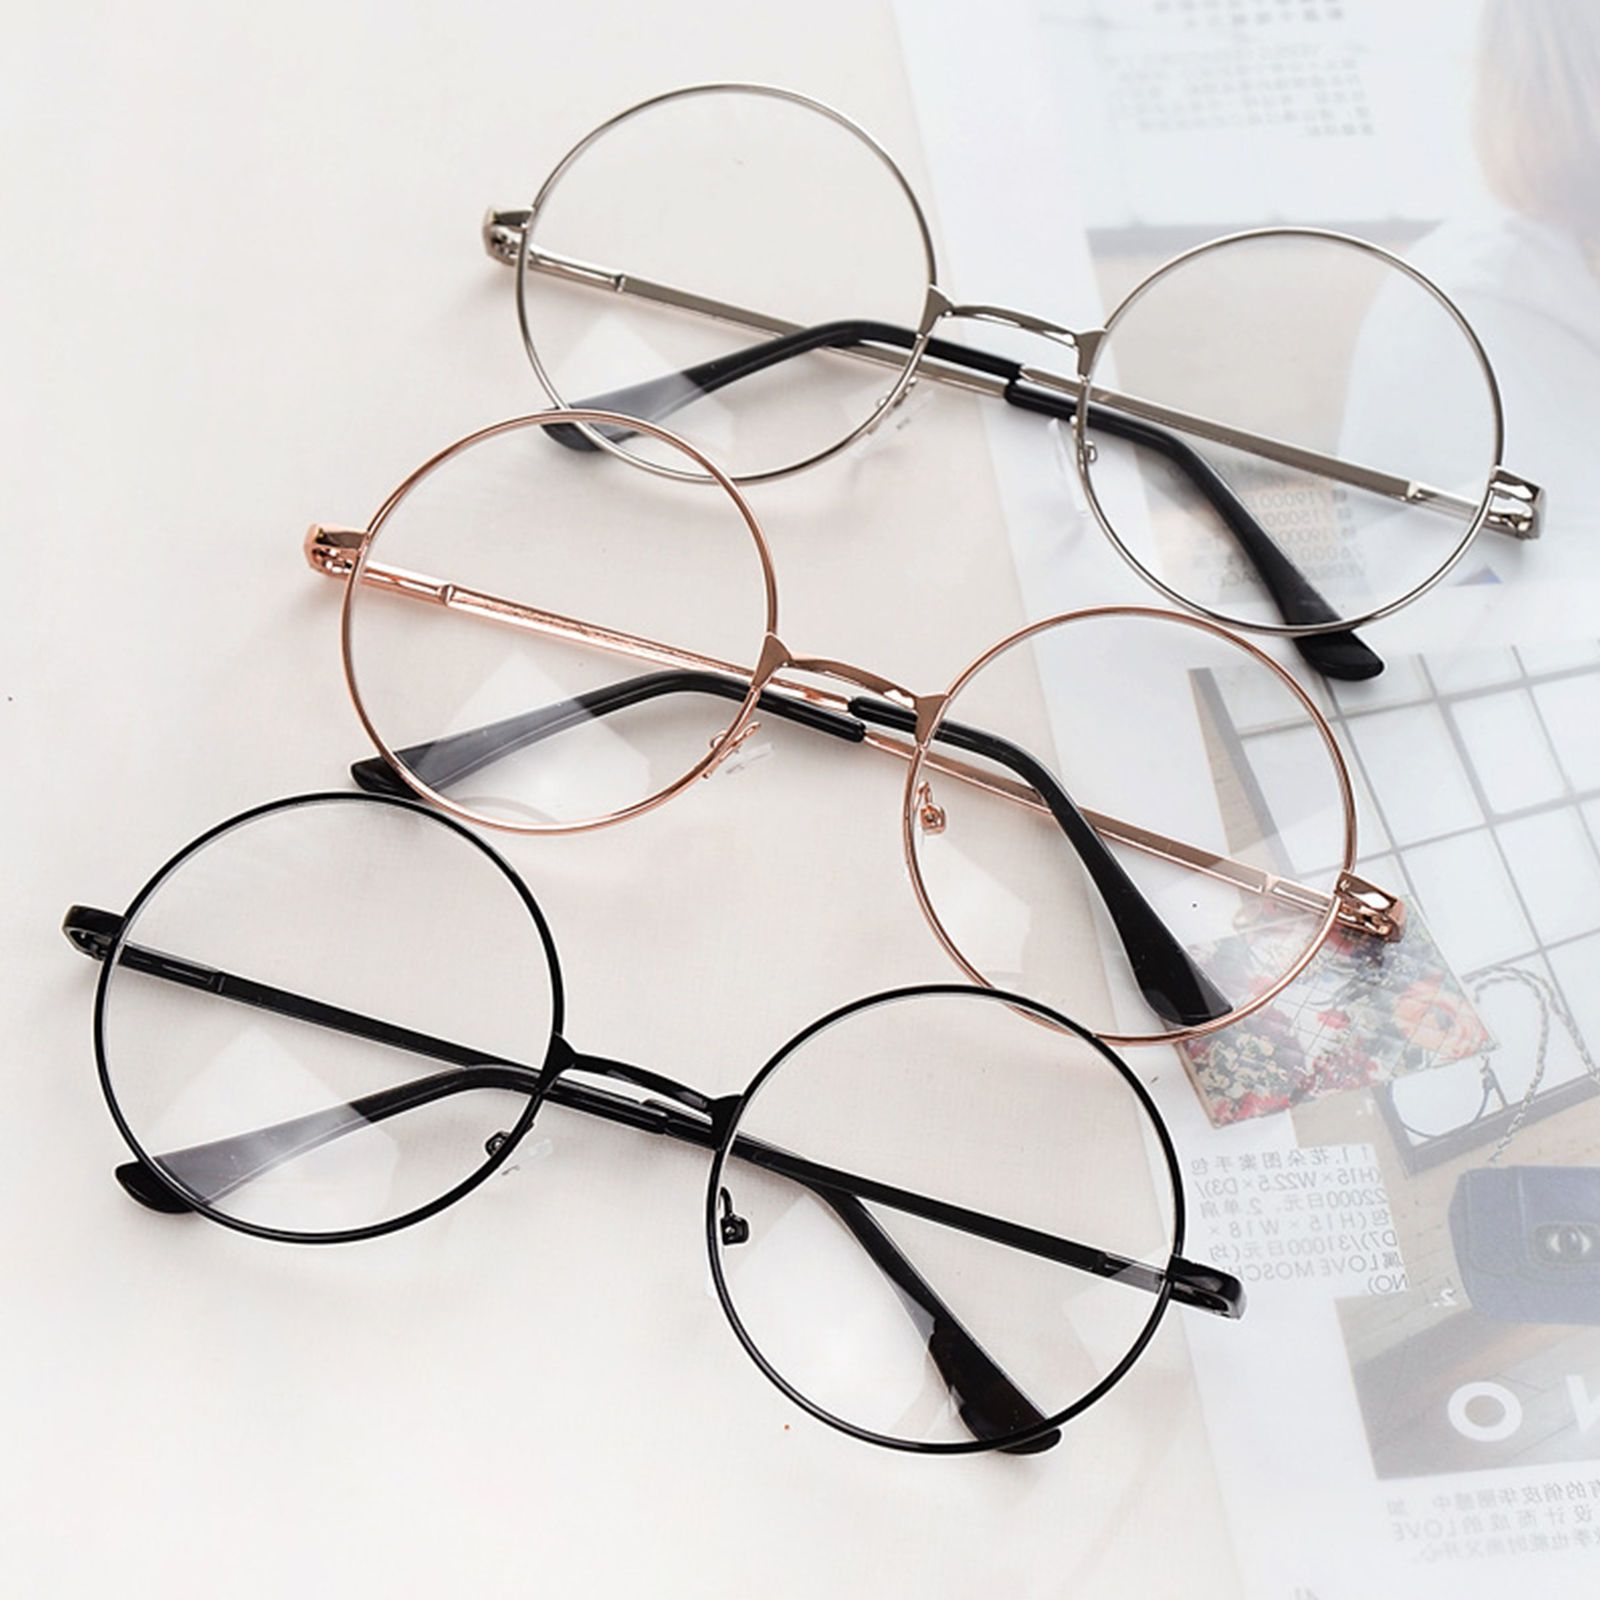 bac985ada4 Best Retro Eyeglasses Big Round Metal Frame Clear Lens Glasses Nerd  Spectacles